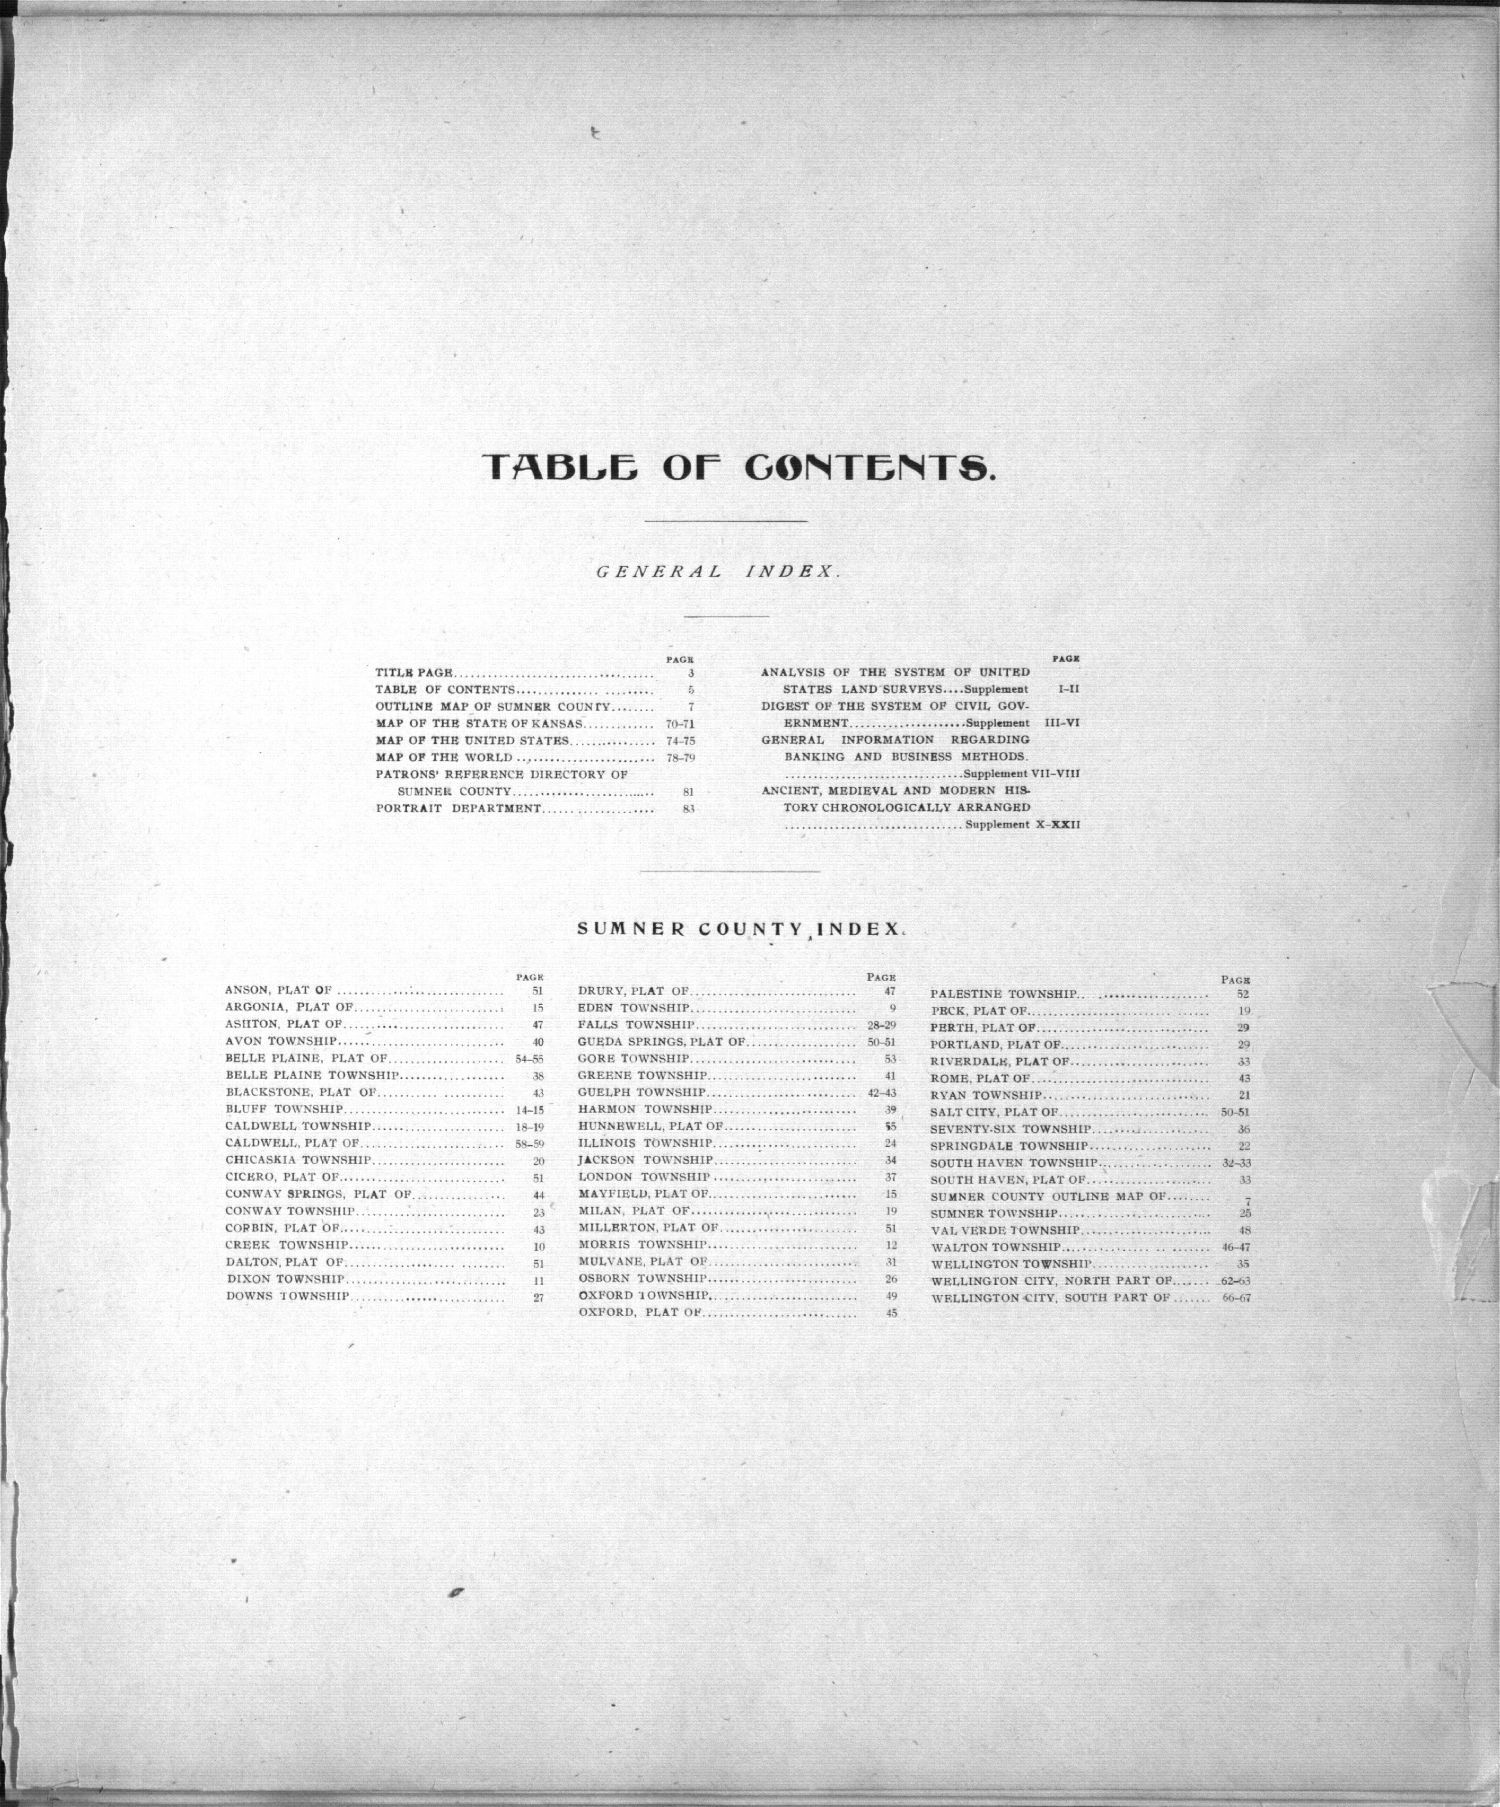 Standard atlas of Sumner County, Kansas - Table of Contents